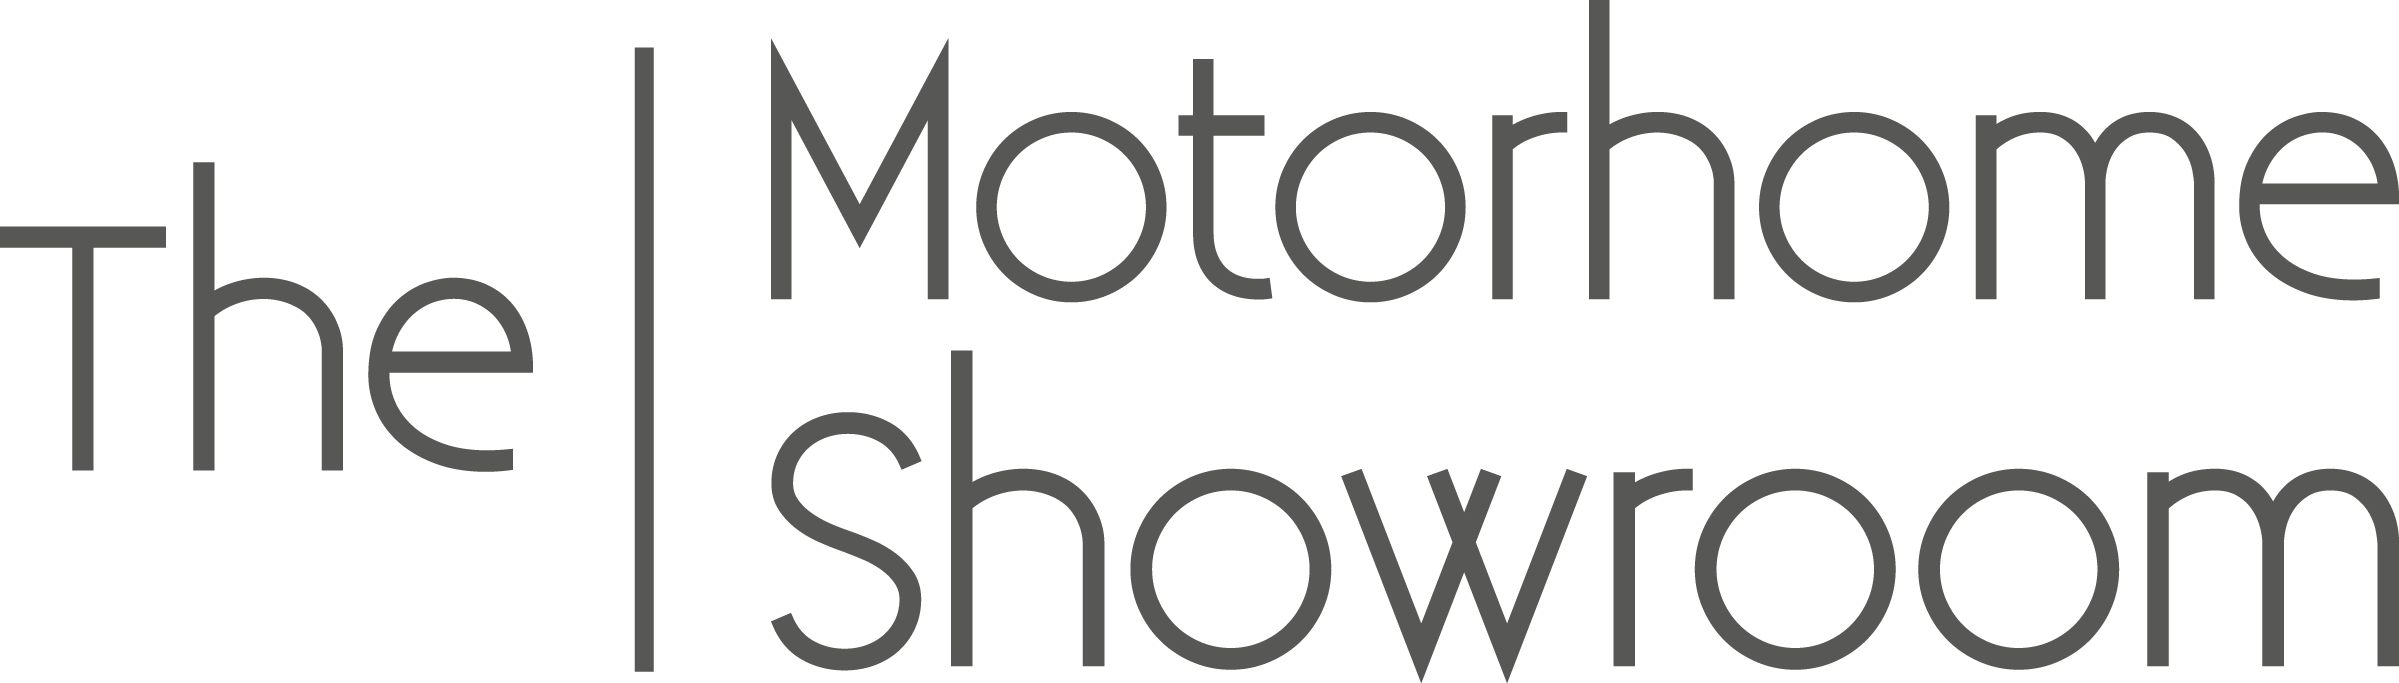 Read The Motorhome Showroom Reviews